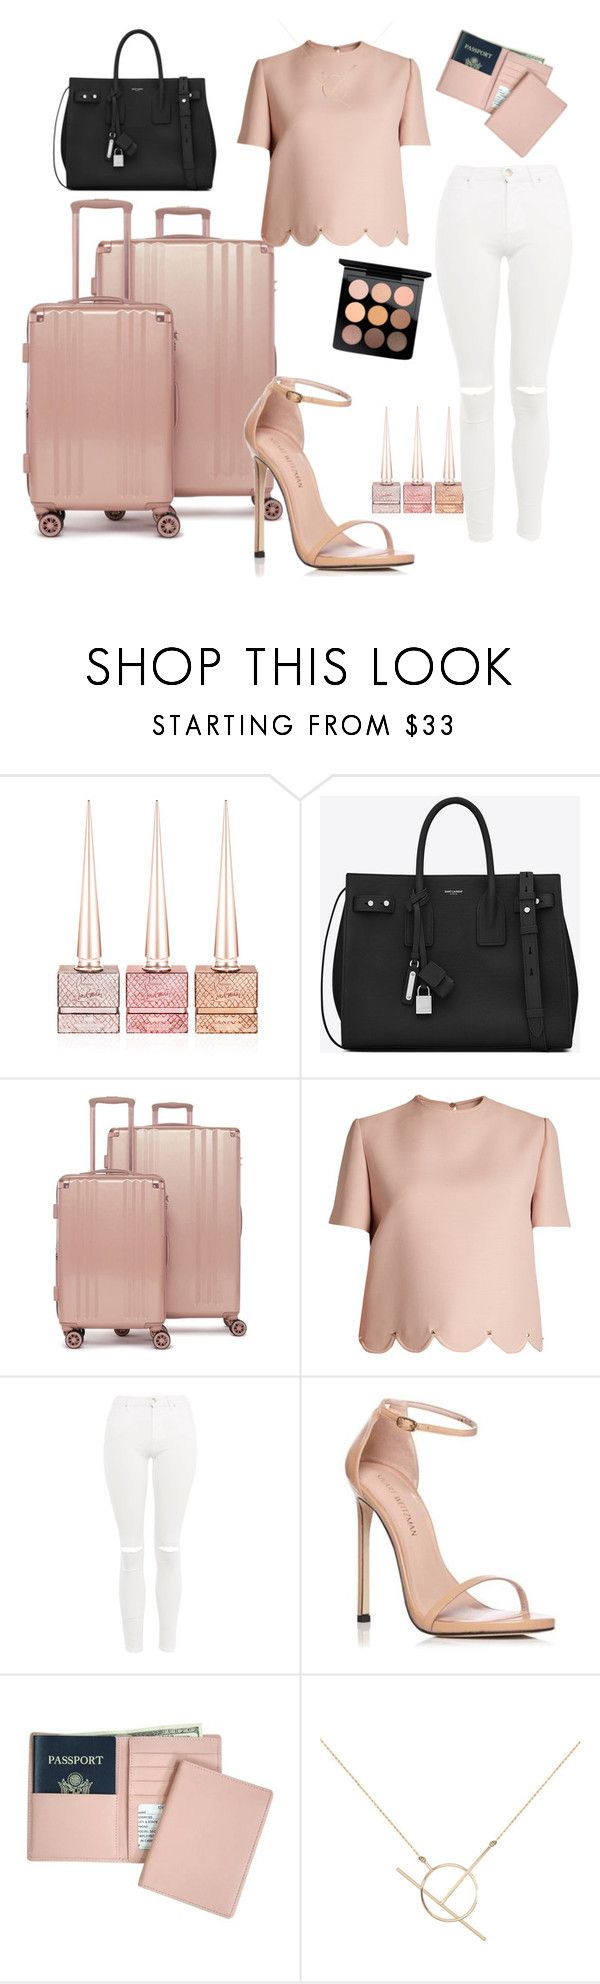 """""""Untitled #626"""" by lostmahomie on Polyvore featuring Christian Louboutin, Yves Saint Laurent, CalPak, Valentino, Topshop, Stuart Weitzman, Royce Leather, A Weathered Penny and MAC Cosmetics"""